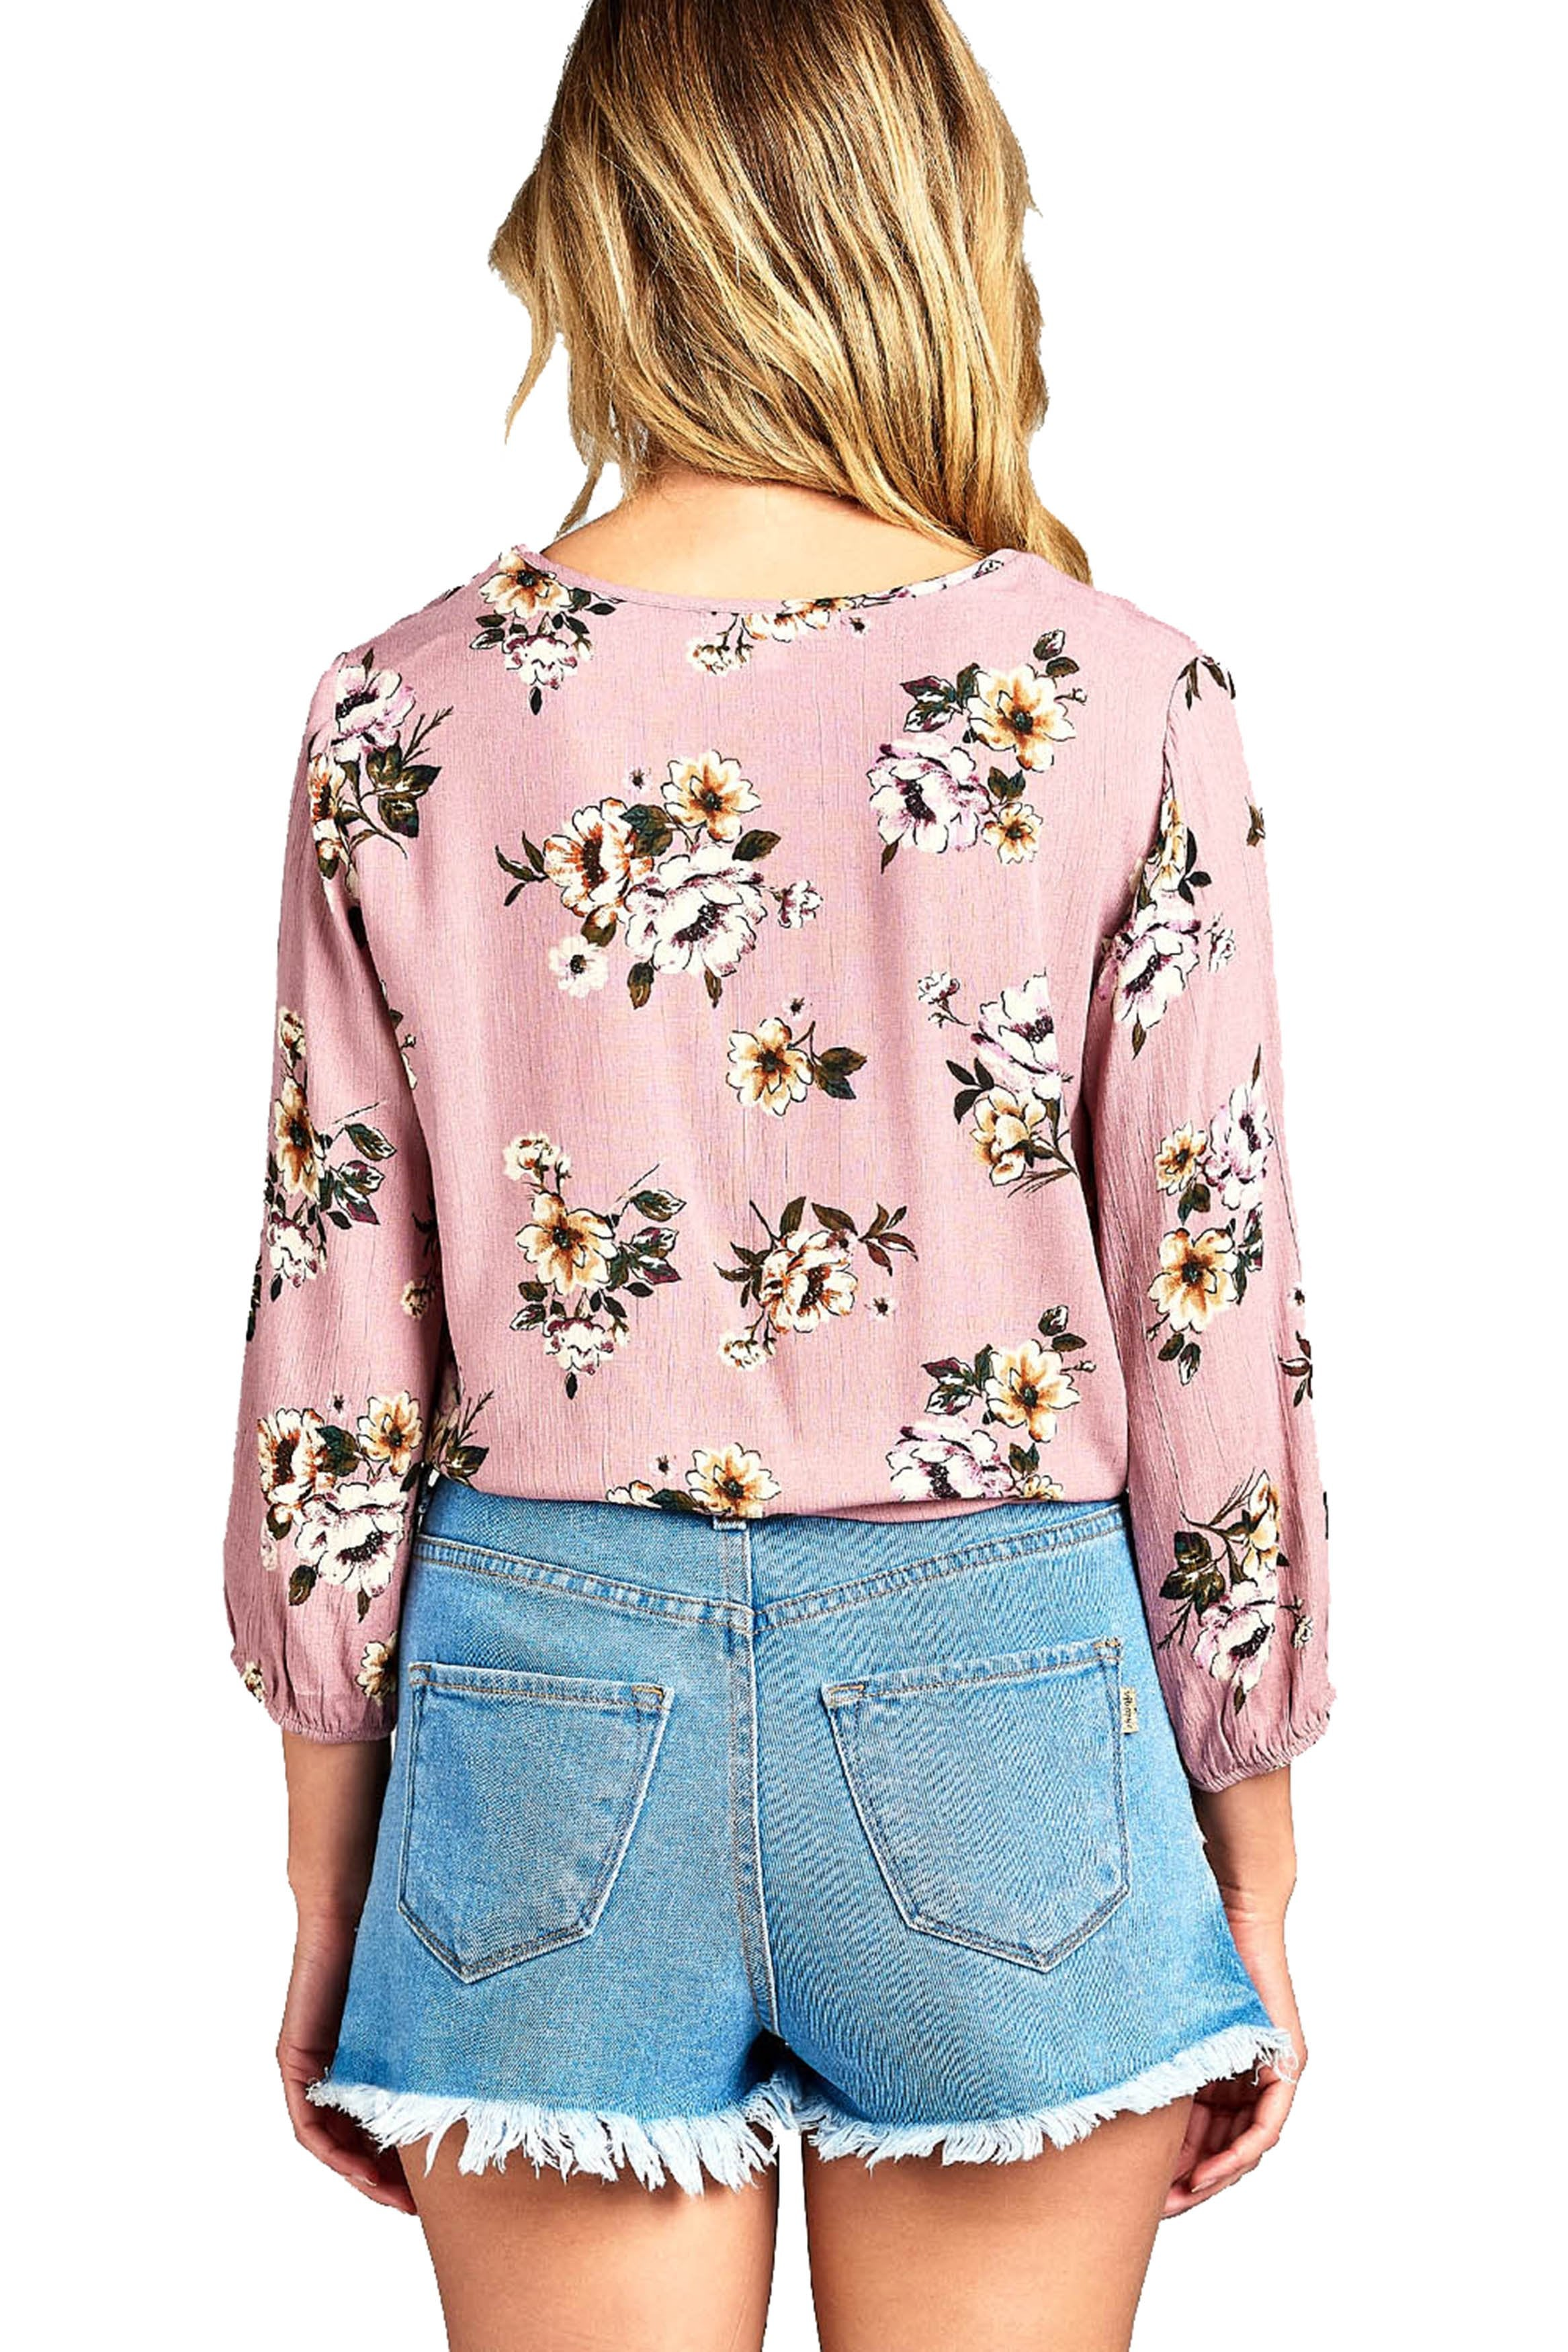 Long Sleeve Elasticized Cuffs Round Neck Semi Cropped Floral Print Front Self Tie Top